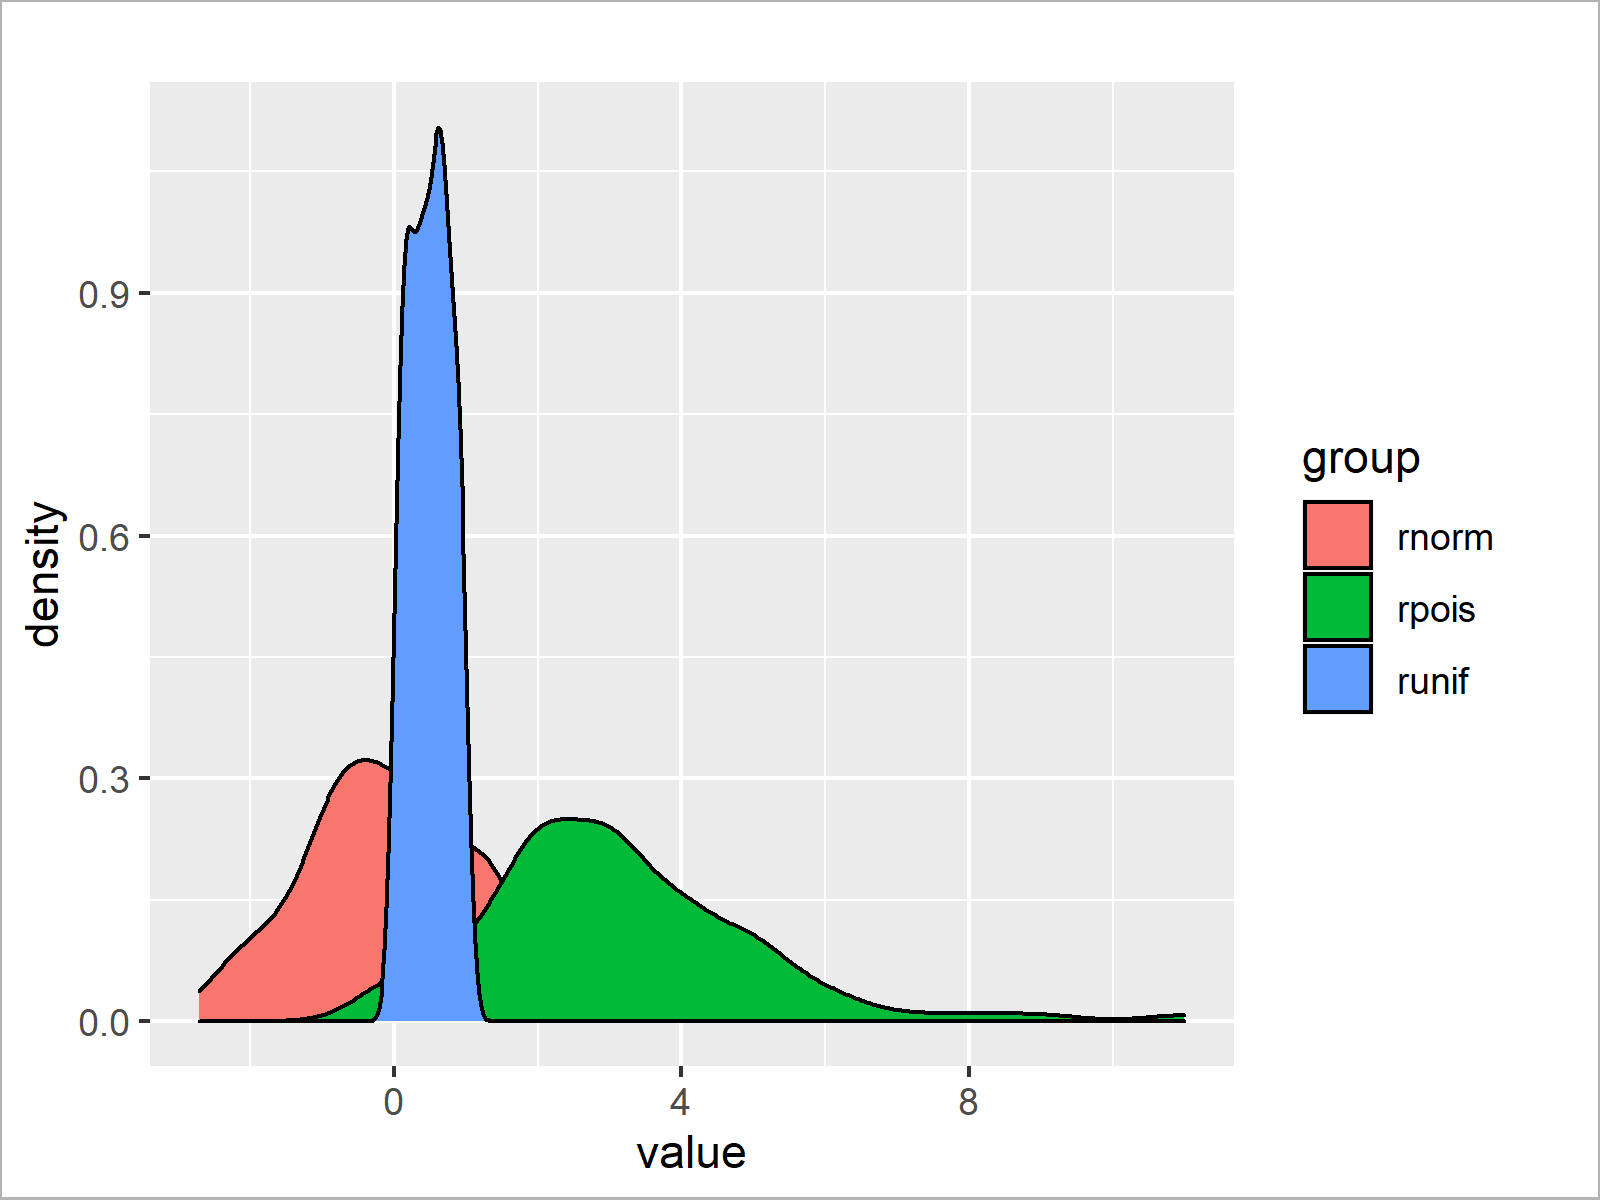 r graph figure 1 overlay ggplot2 density plots